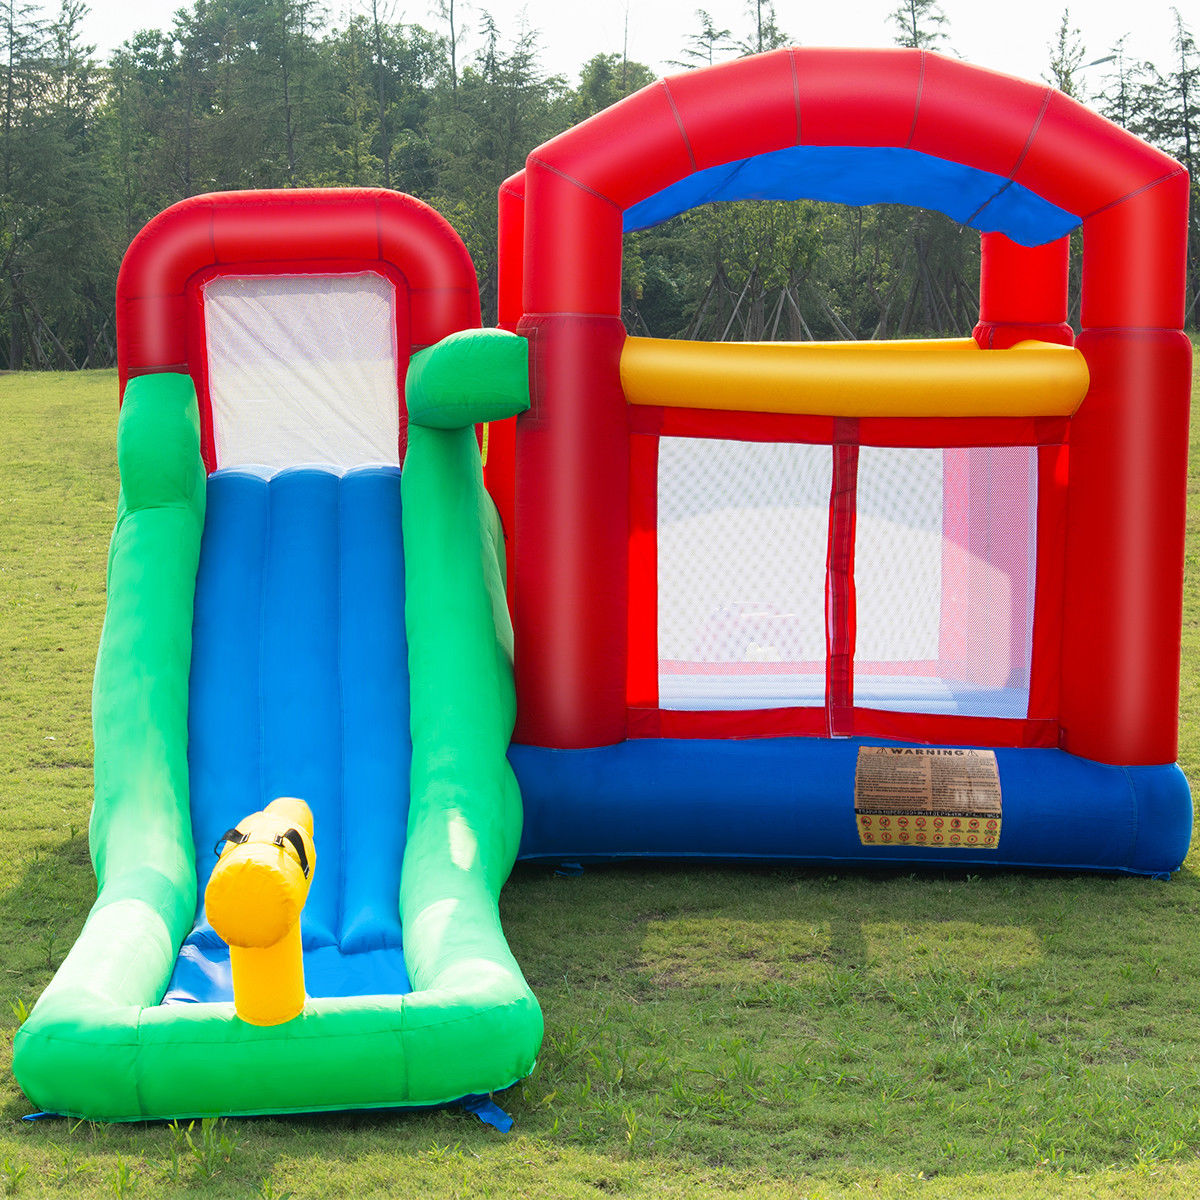 Goplus Inflatable Moonwalk Slide Bounce House Kids Jumper Bouncer Castle W/Storage Bag